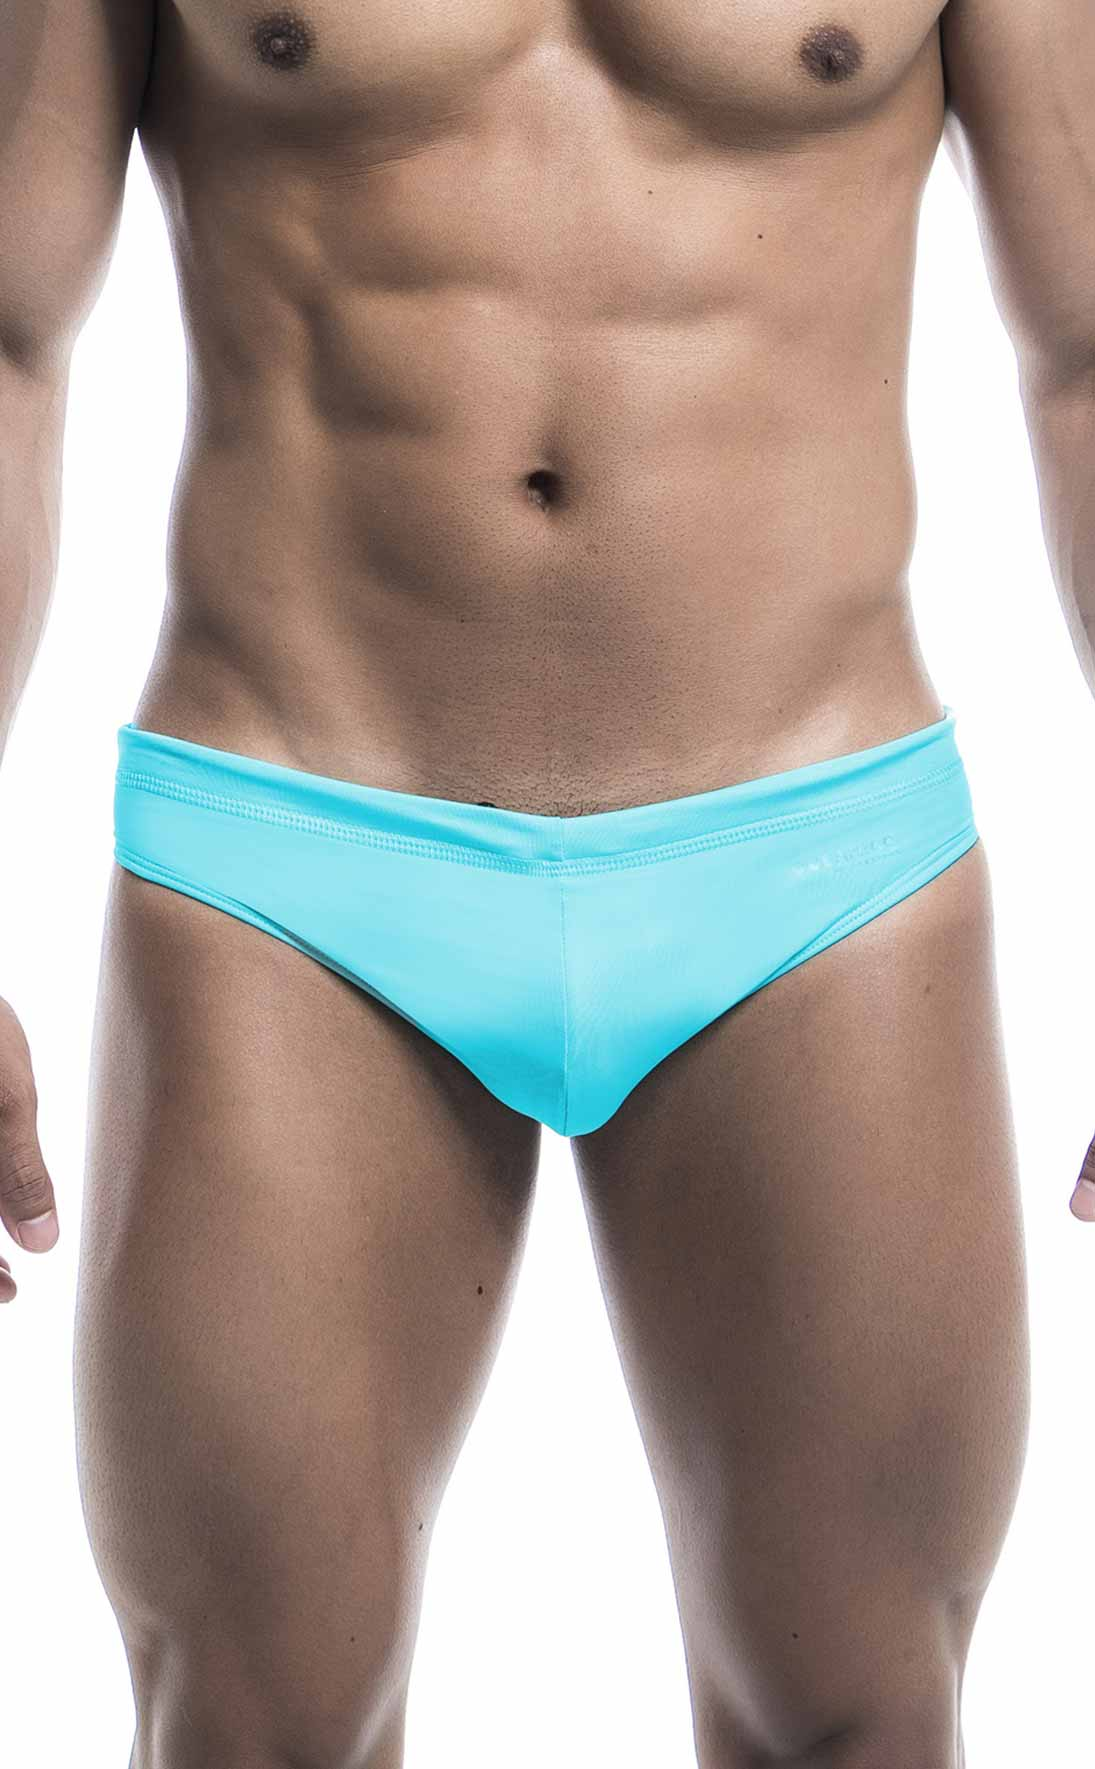 Men's swim briefs - Malebasics Oceanico Men's Swim Brief available at MensUnderwear.io - Image 1